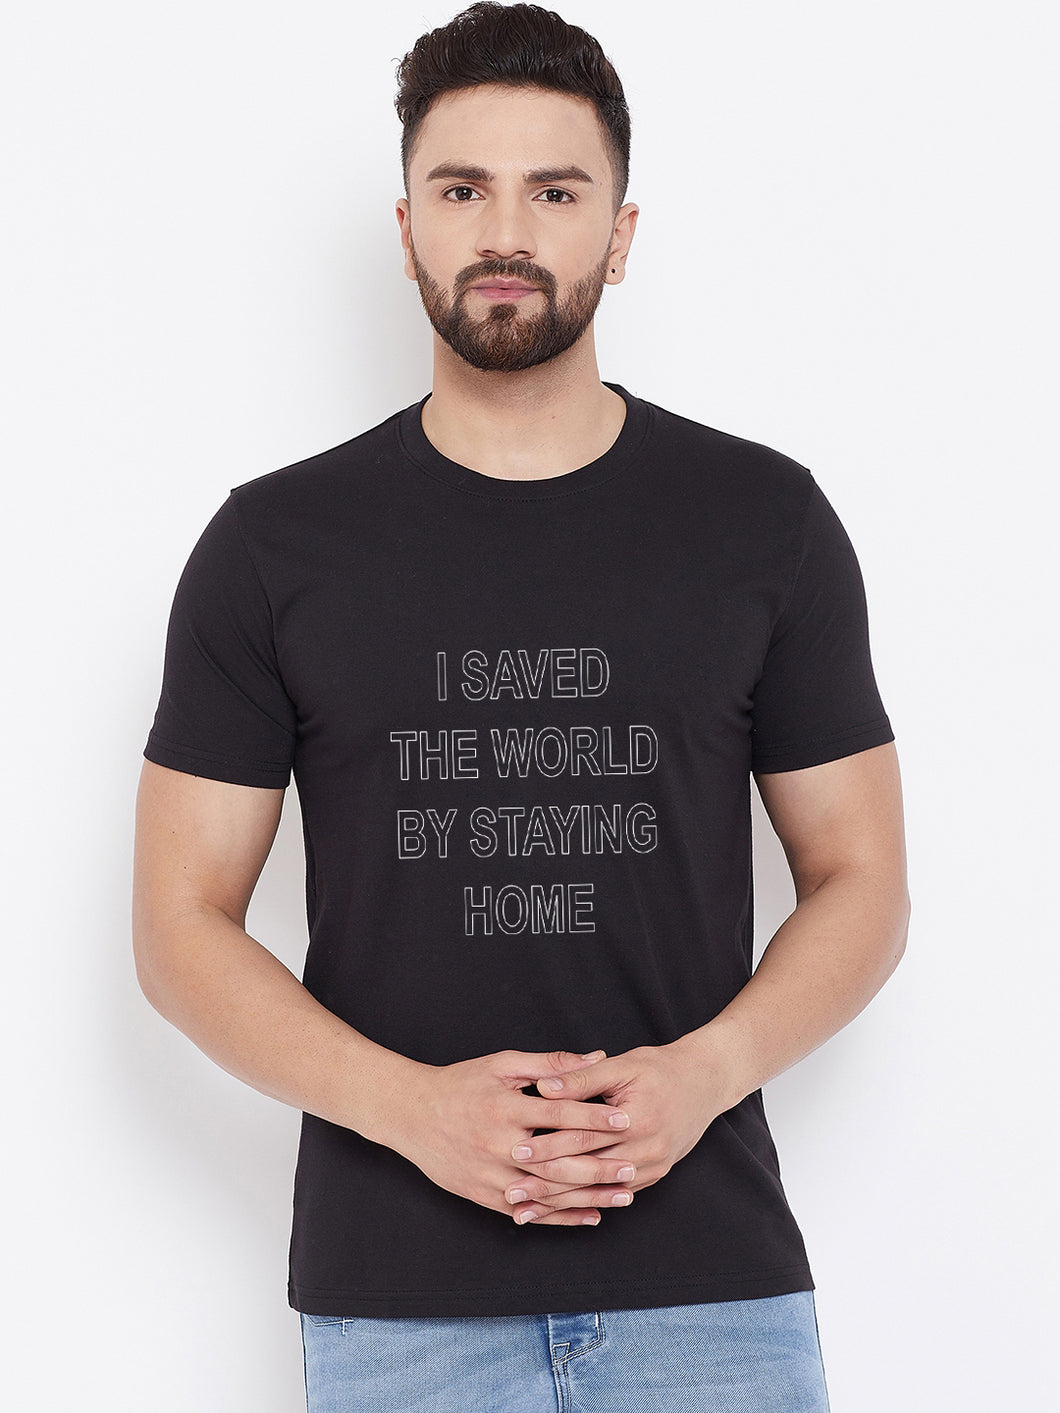 Mens Saved World Tshirt